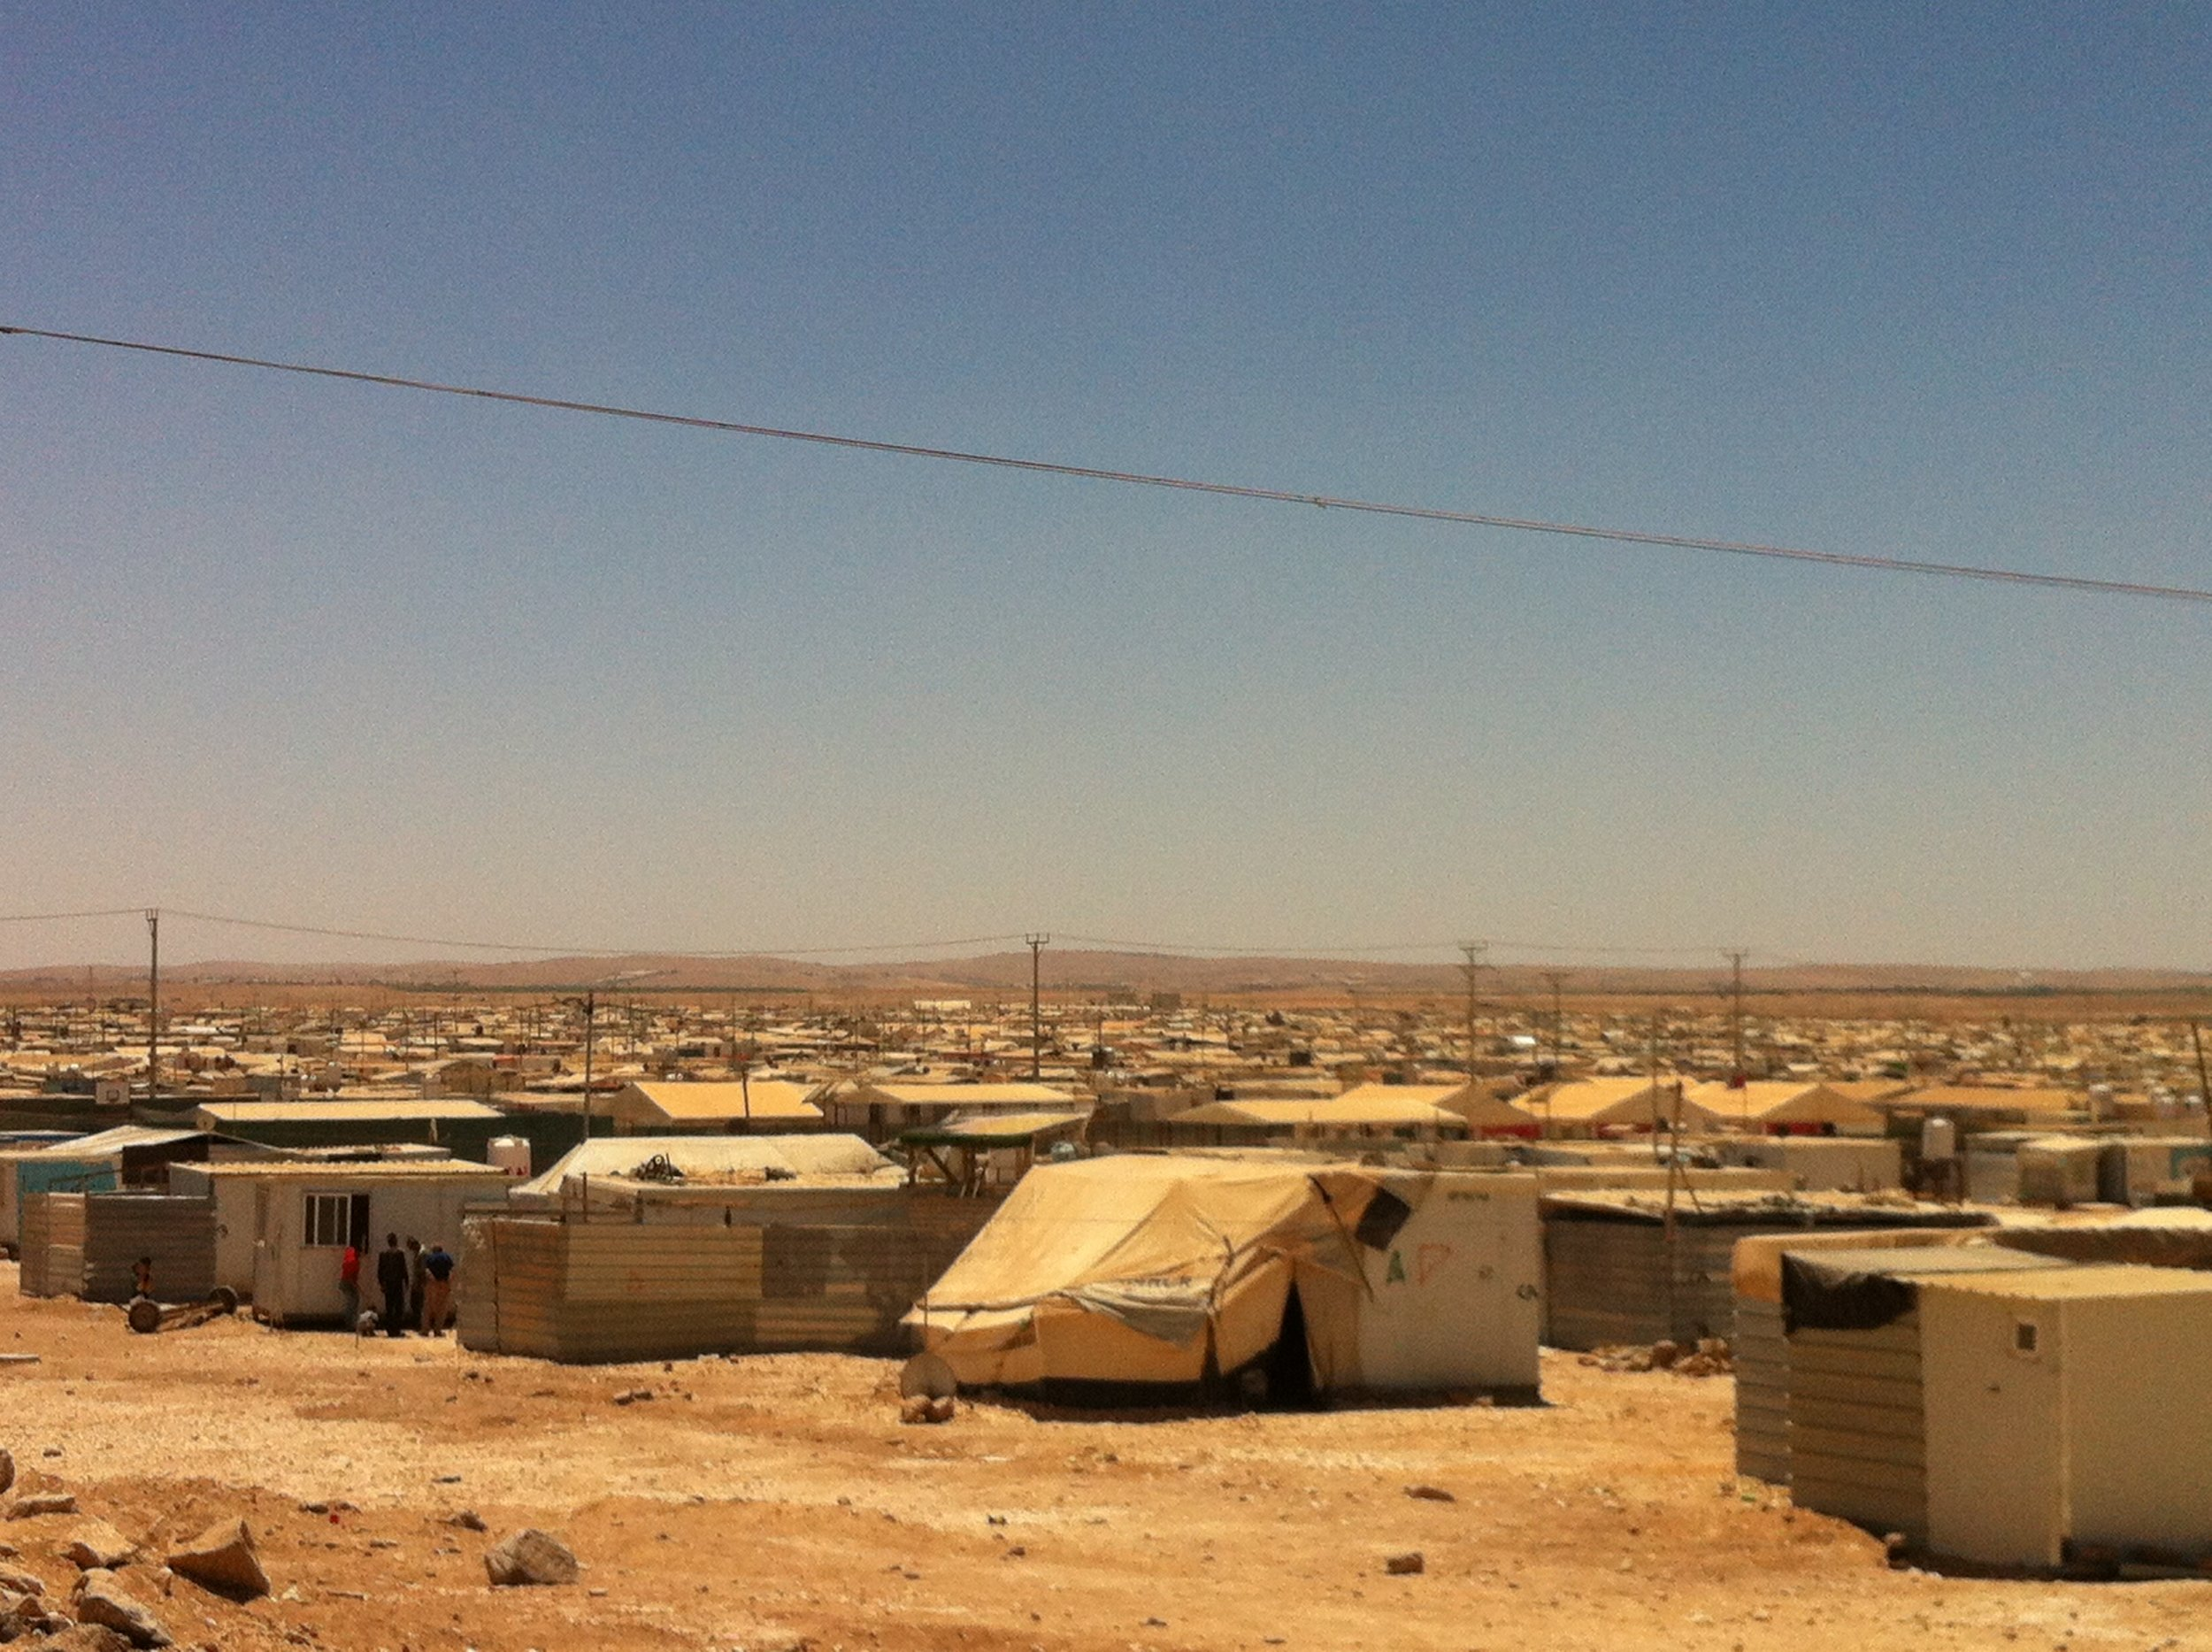 A view across Za'tari Refugee Camp, 27 July 2016. Photo by Lewis Turner.